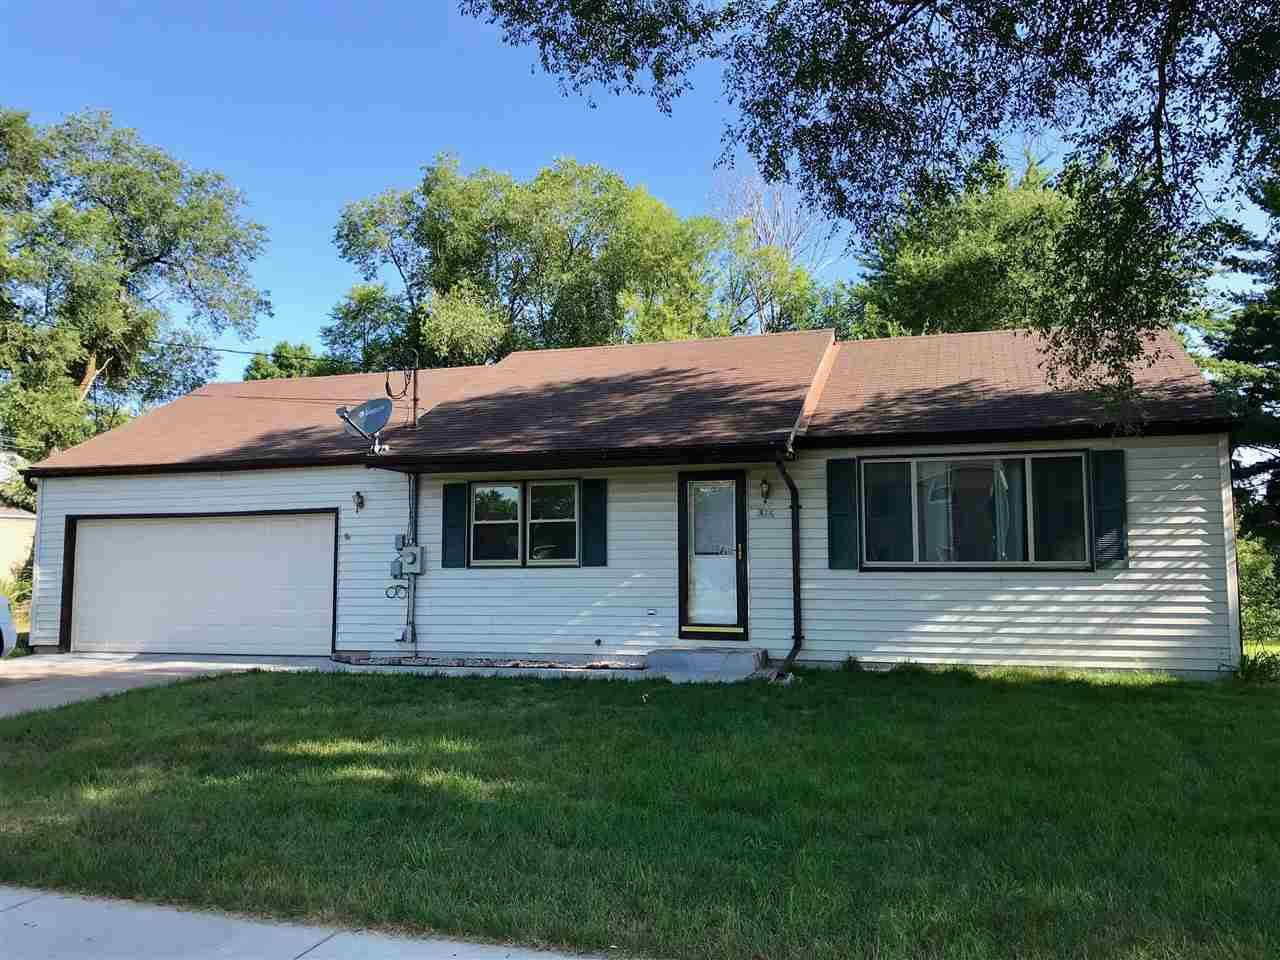 420 W DIVISION STREET, Wautoma, WI 54982 - MLS#: 50217167